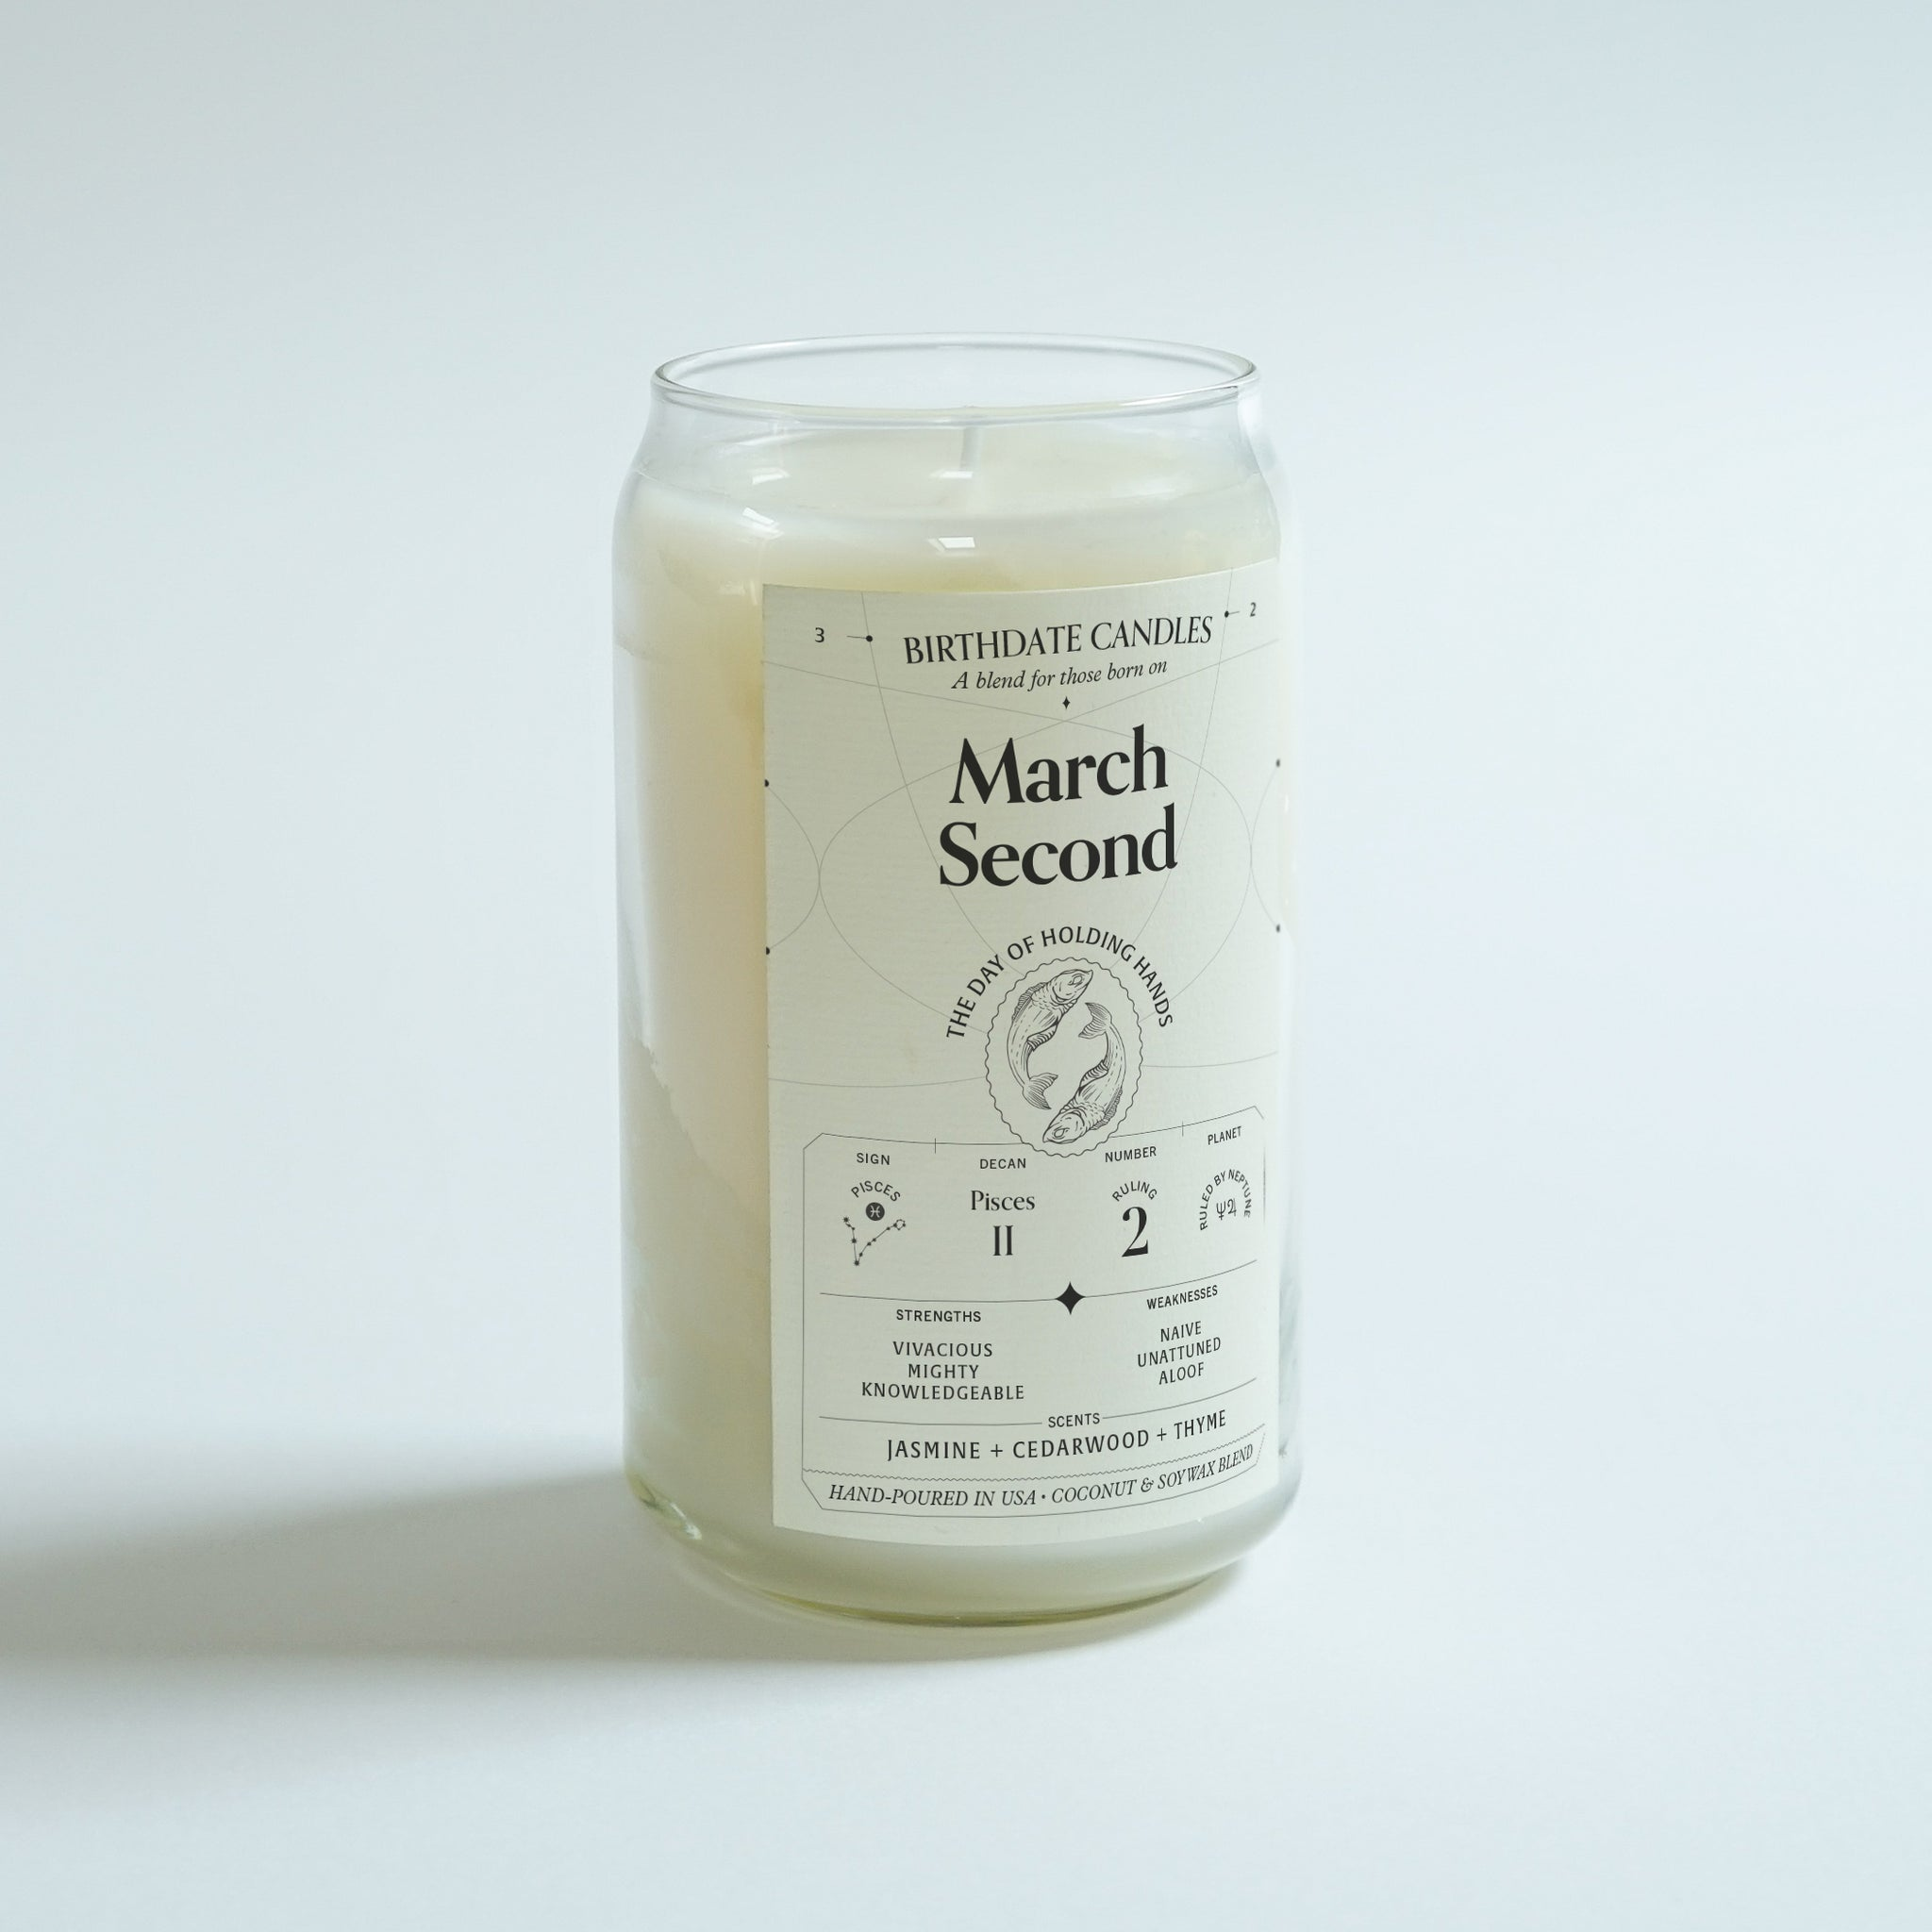 The March Second Birthday Candle